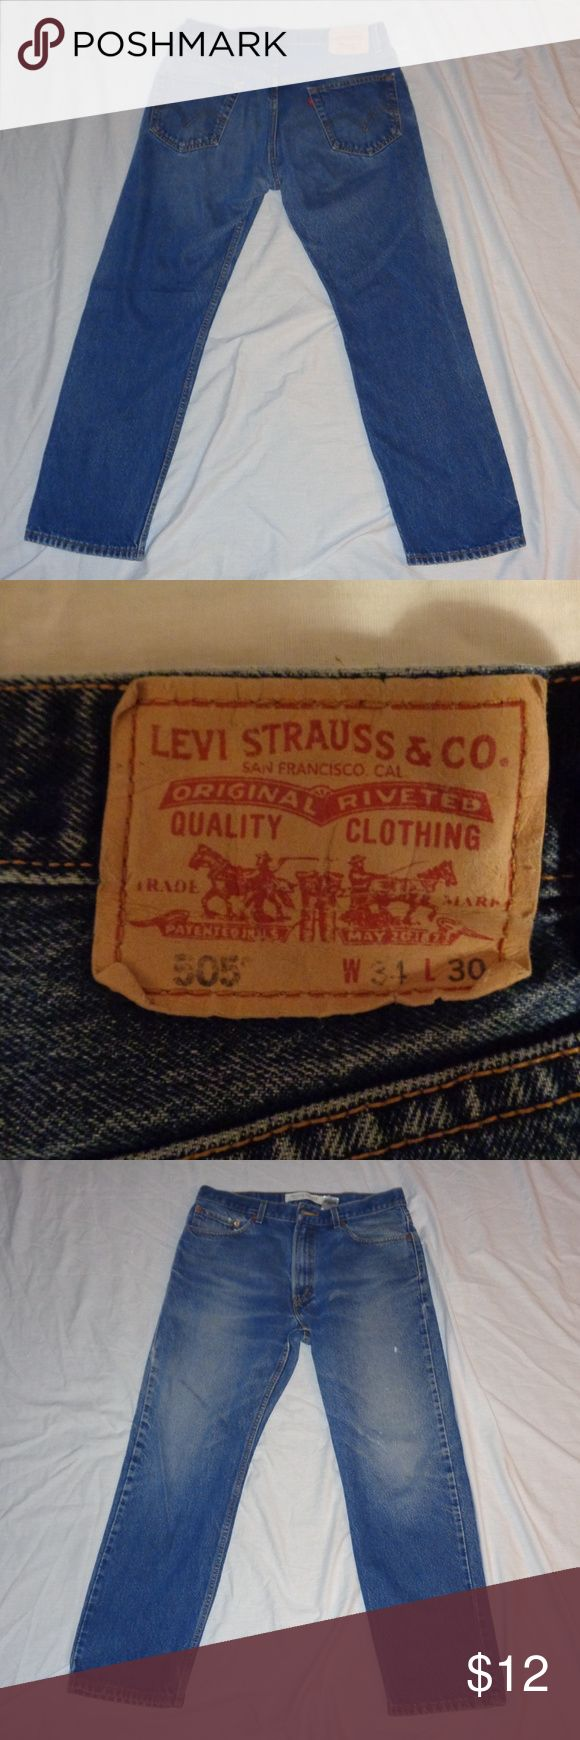 Levi 505 Jeans  Regular Fit 34 W 30 L Pictures Show details Please Bundle for Better deals, Offers always welcome! Levi's Jeans